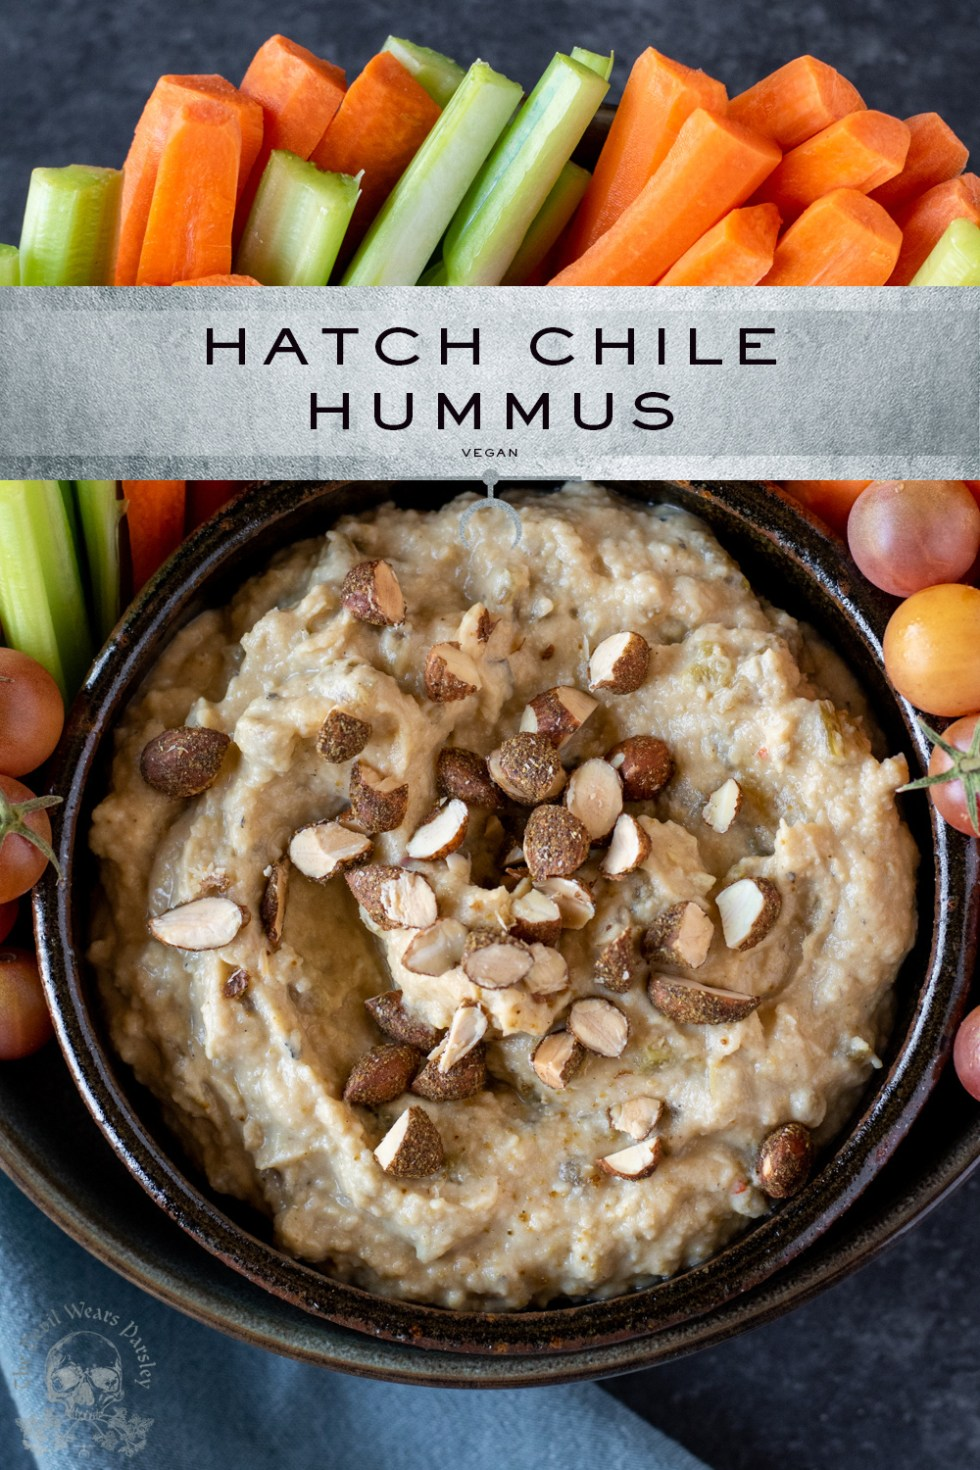 Mild, fresh roasted hatch chiles pair with Melissa's Produce new Green Hatch Chile Roasted Almonds to make a healthy Hatch Chile Hummus.